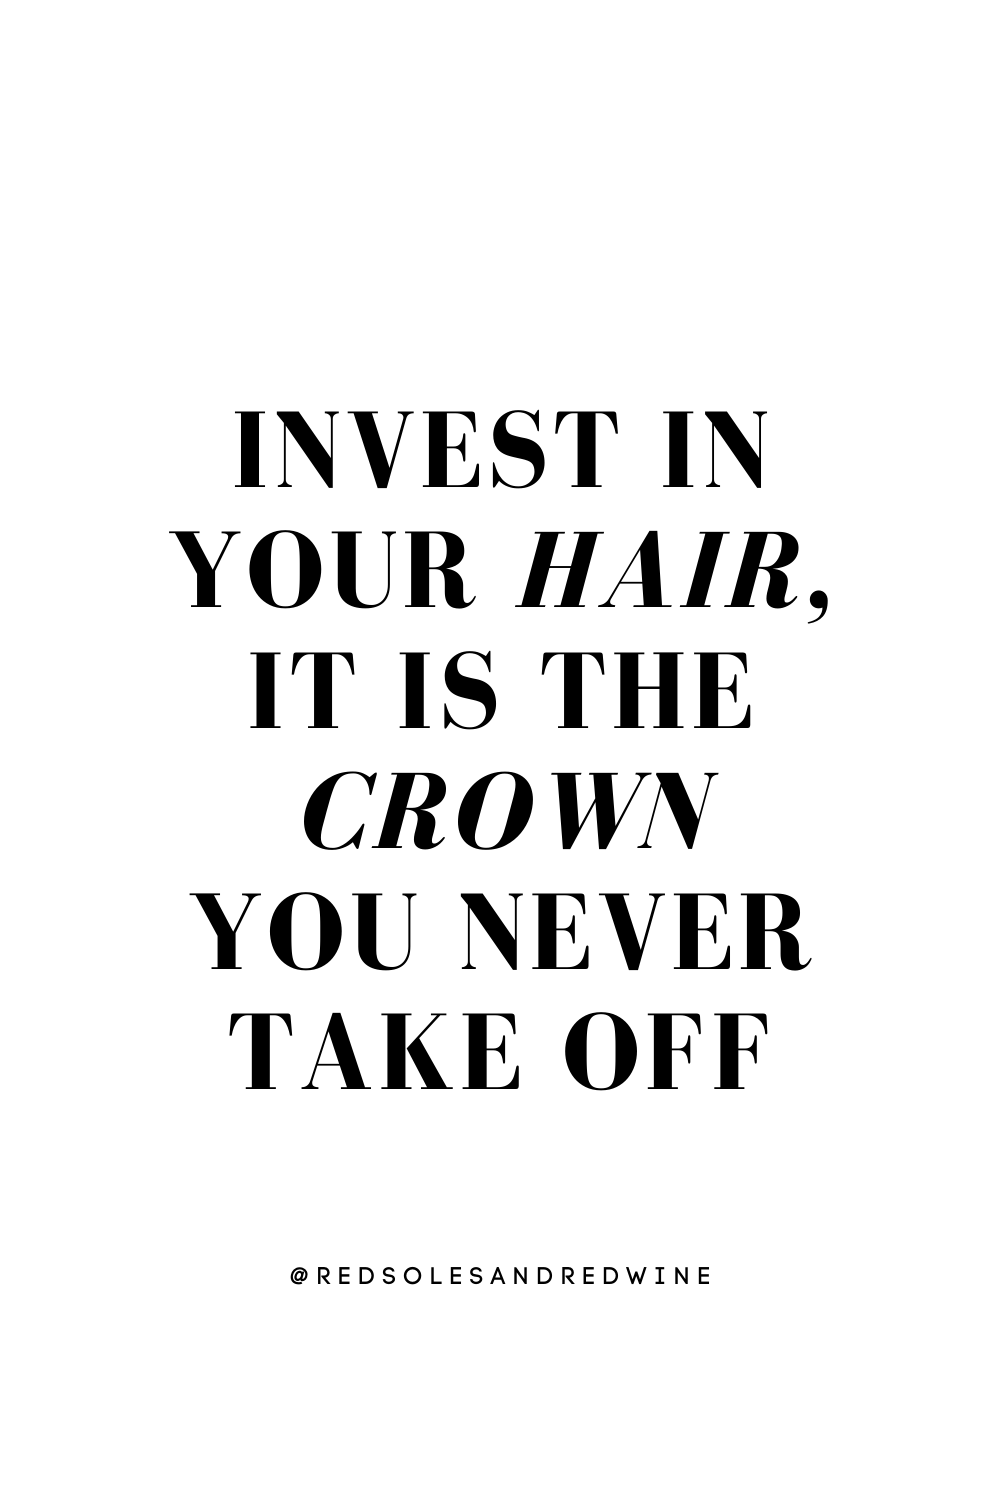 invest in your hair, it is the crown you never take off quote, hair quote, beauty quote, crown quote, quotes about hair, quotes about self care, quotes about beauty,hair routine, hair care tips, beauty routine, beauty blogger, self care, beauty routine, hair routine, hair and heritage, Red Soles and Red Wine, Jennifer Worman